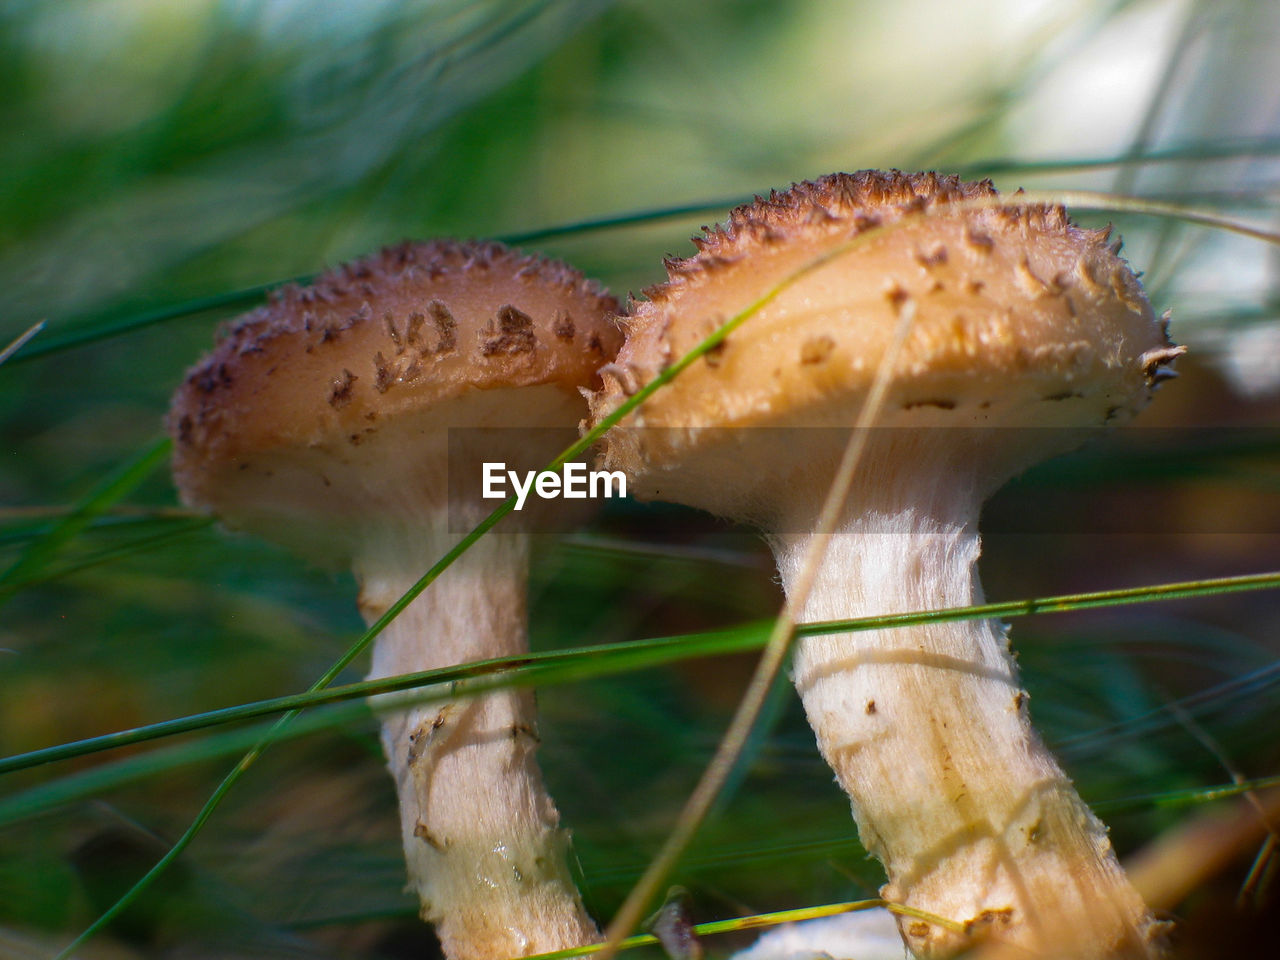 plant, mushroom, close-up, growth, fungus, food, no people, vegetable, focus on foreground, nature, day, land, food and drink, freshness, selective focus, beauty in nature, outdoors, field, grass, edible mushroom, toadstool